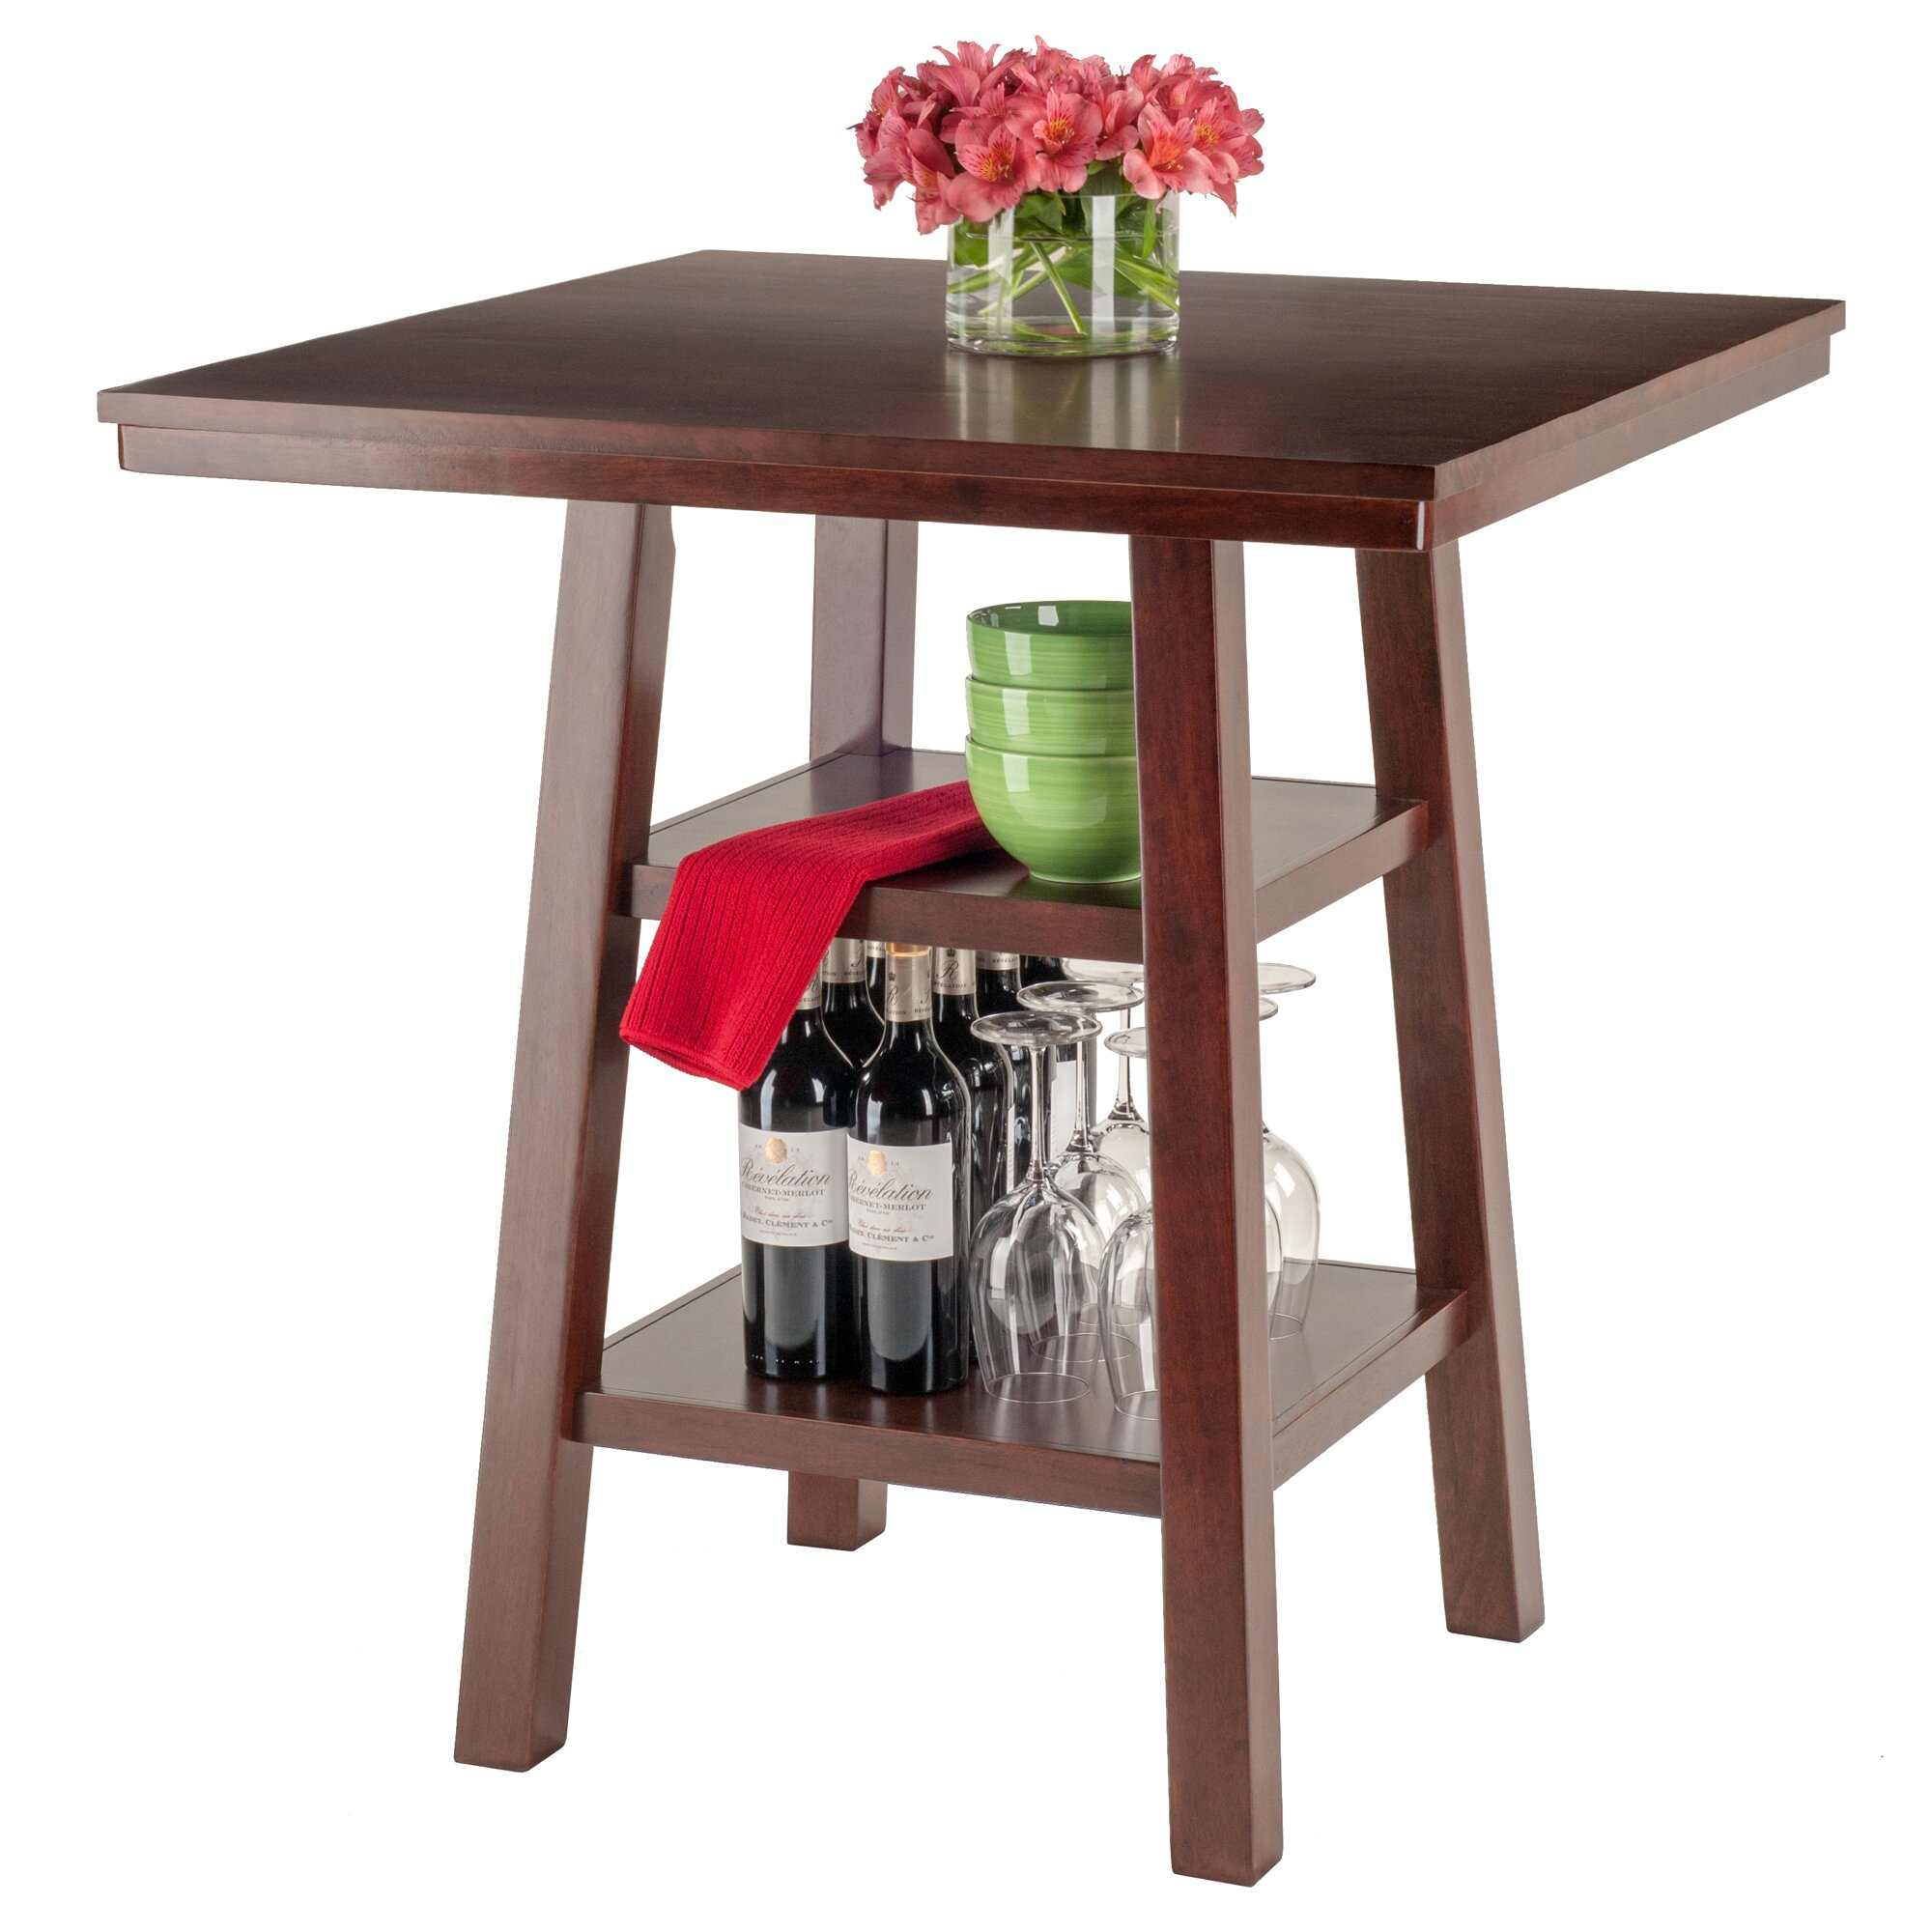 Walmart Bar High Tables : Orlando High End Table 94034 WW from nychinese.us size 2000 x 2000 jpeg 432kB